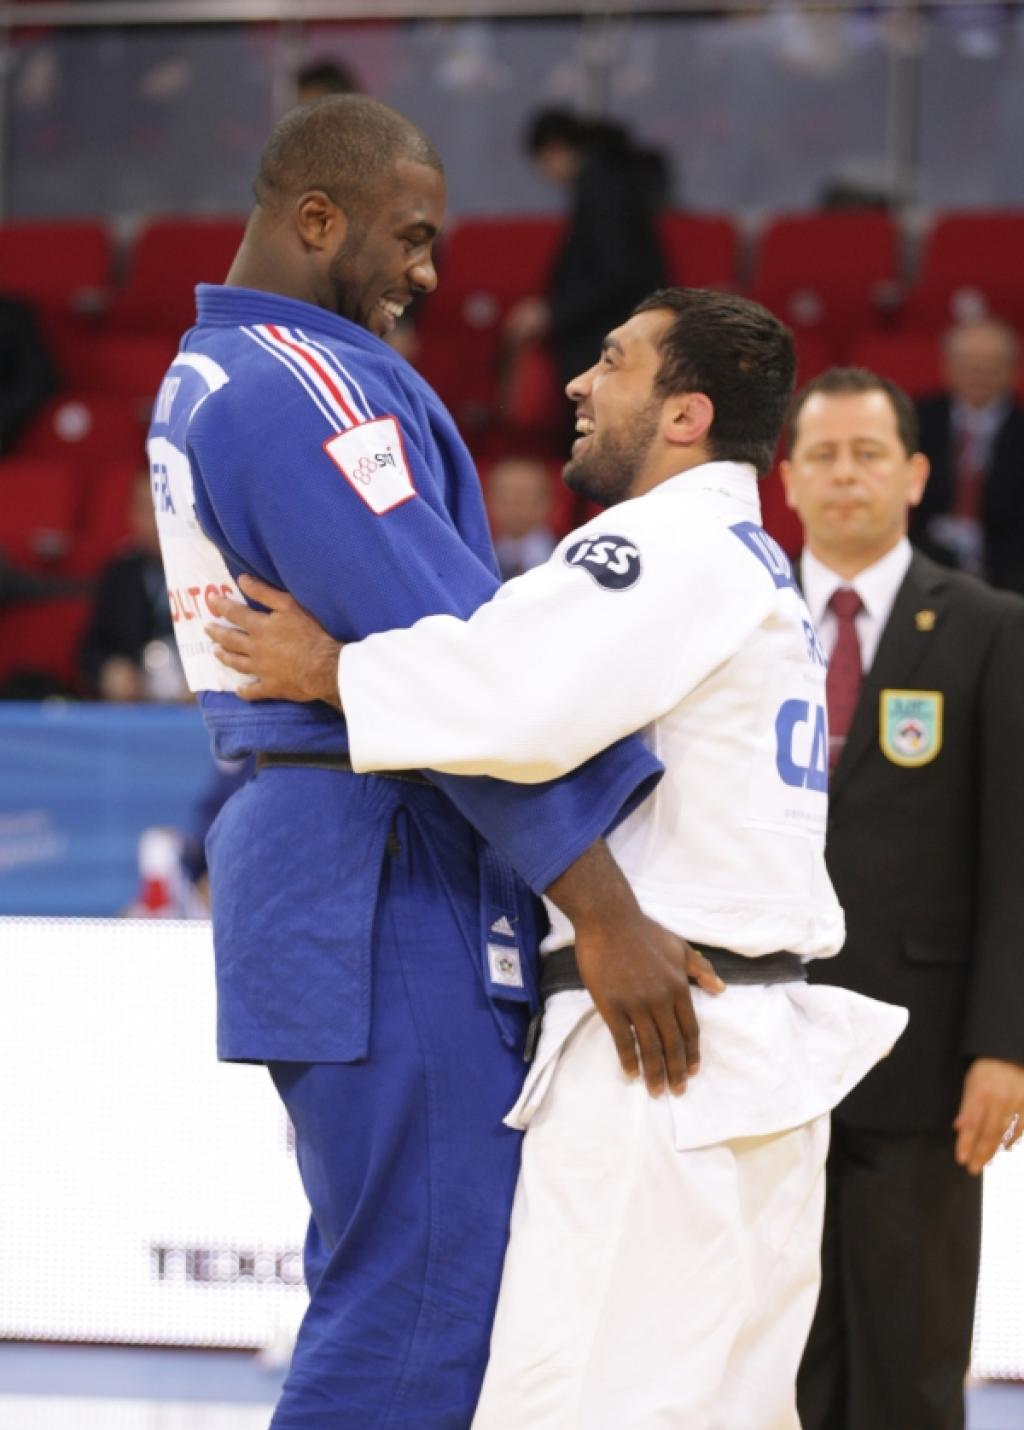 EJU takes over 'white judogi first' change